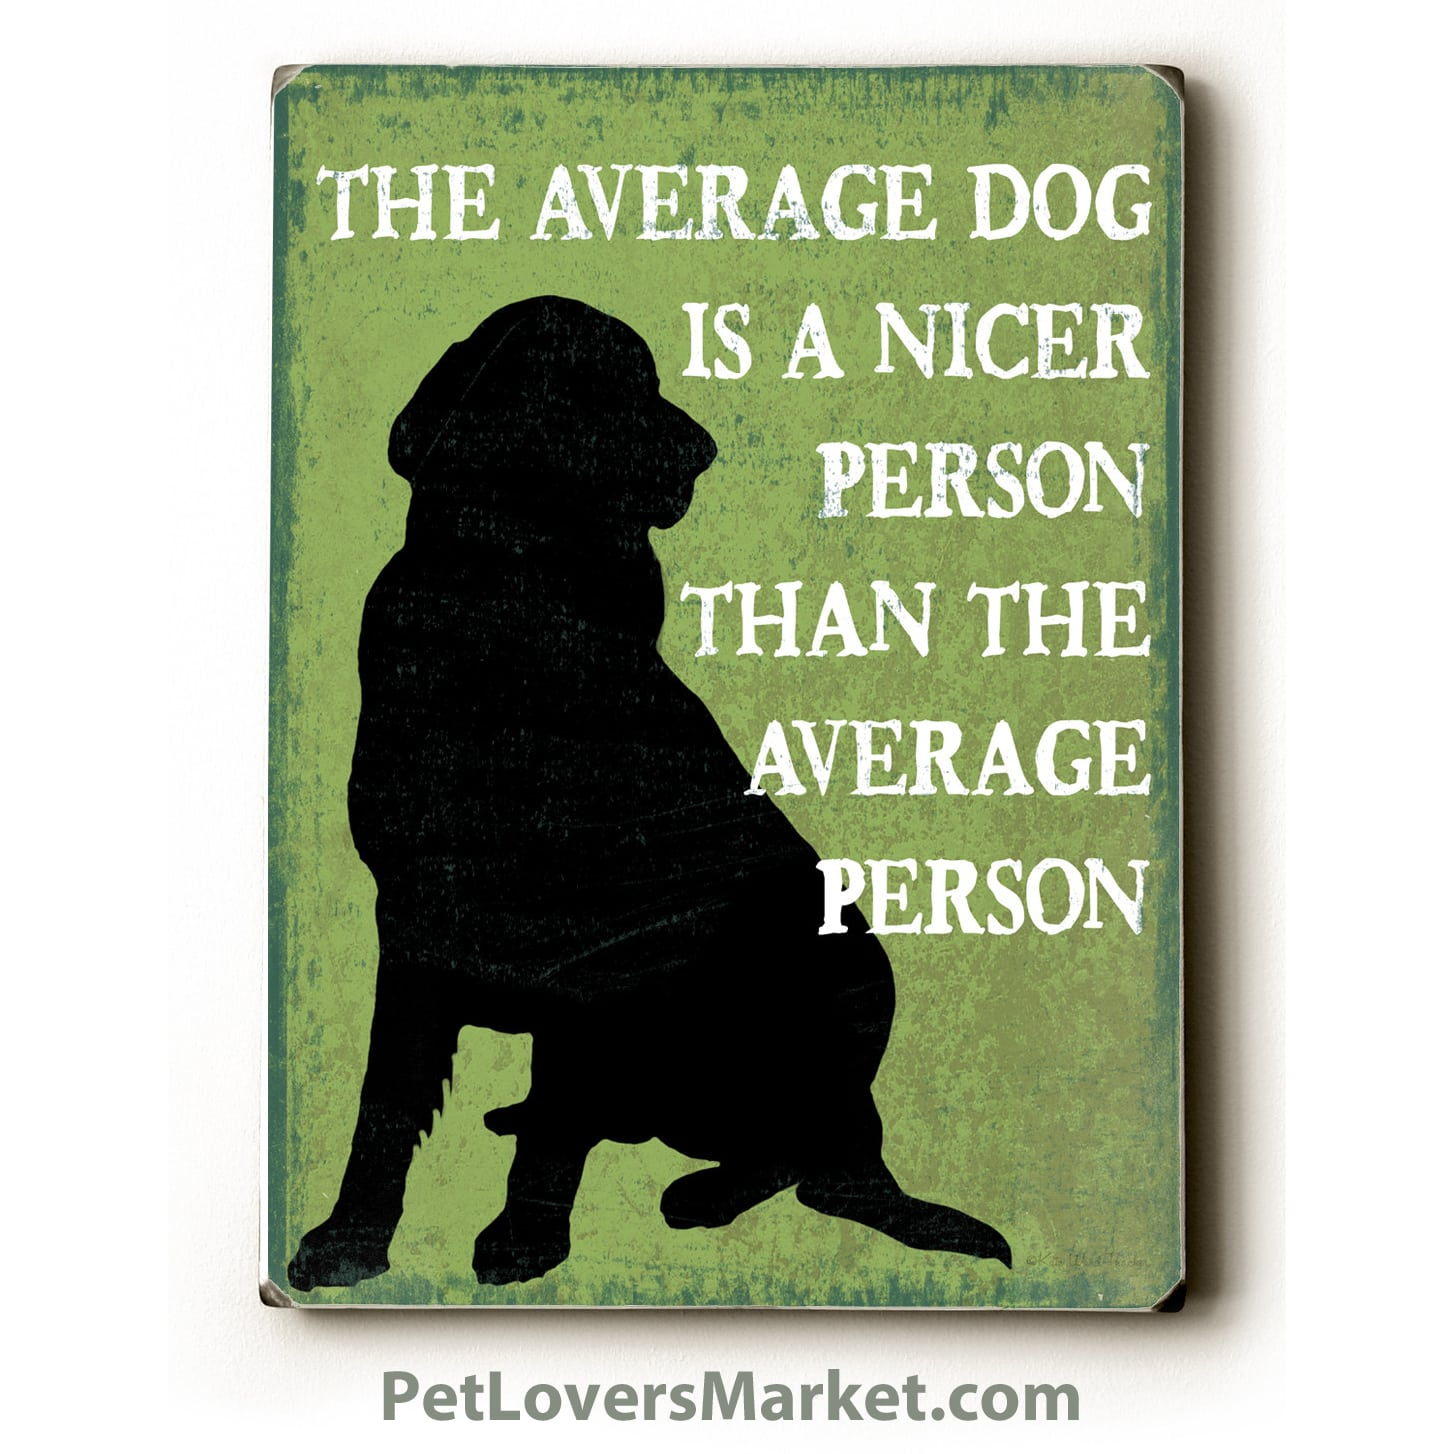 Funny Quotes About Dog Lovers : ... Funny Dog Signs with Funny Dog Quotes. Gifts for Dog Lovers. Wooden